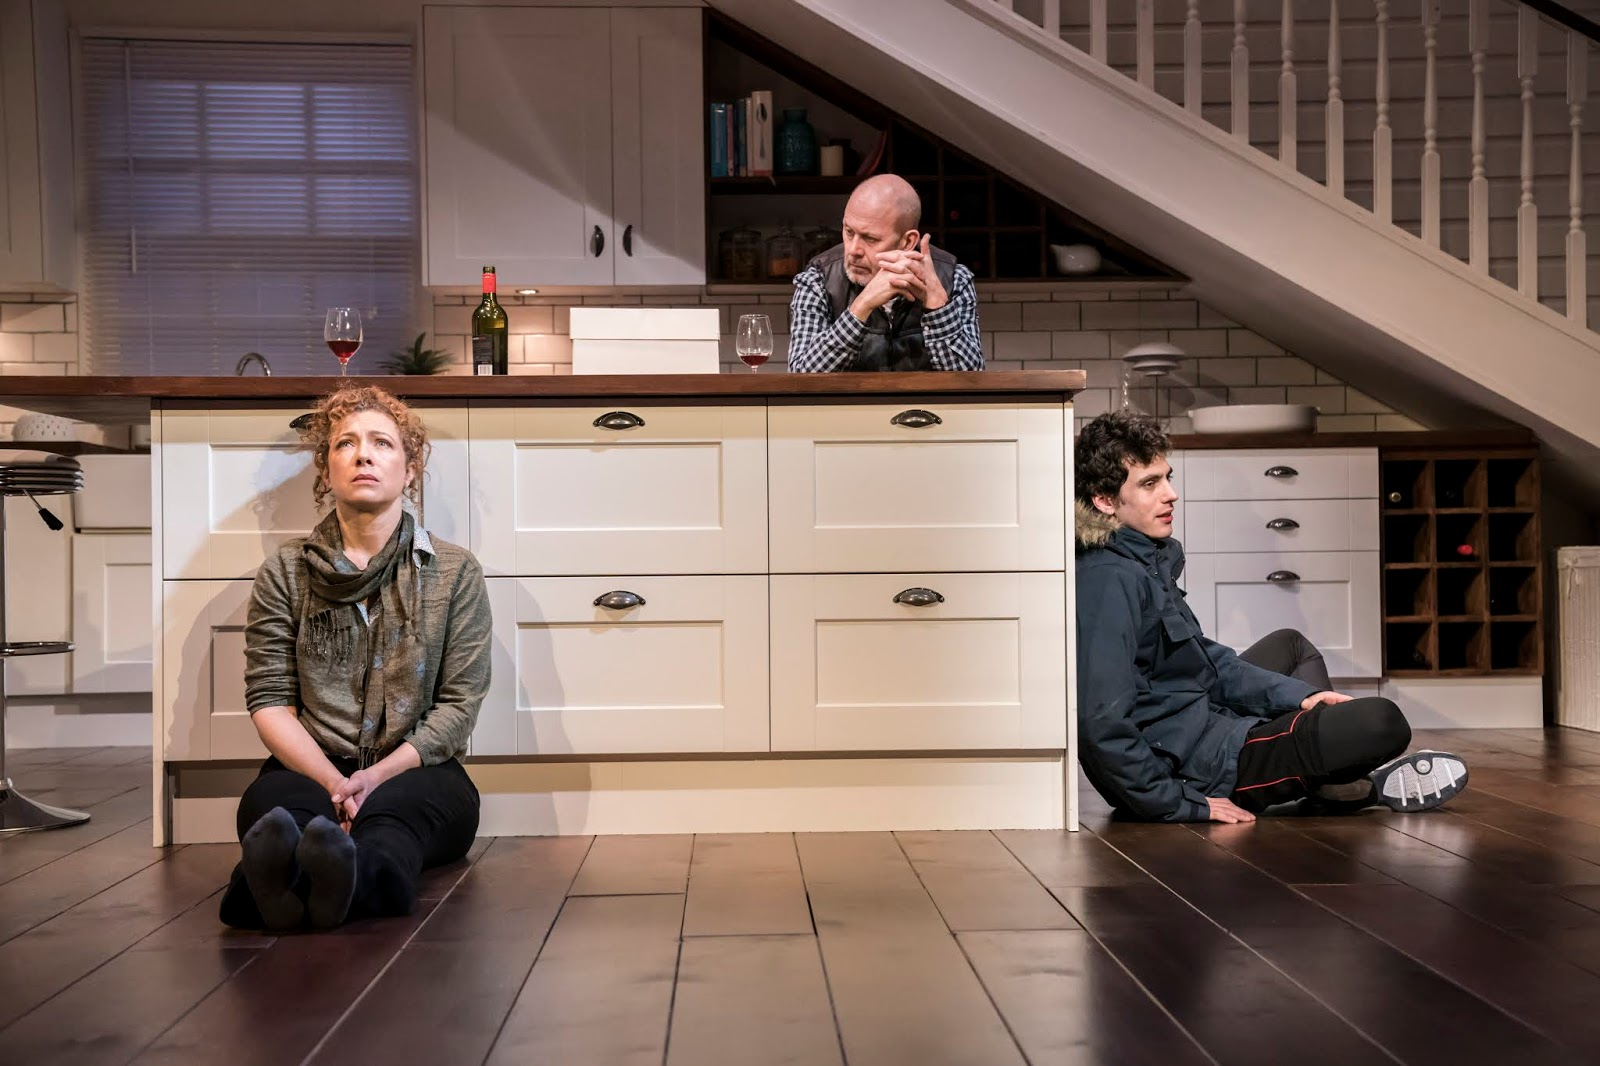 Alex Kingston, Andrew Woodall and Ben Edelman sit in the kitchen set for Admissions